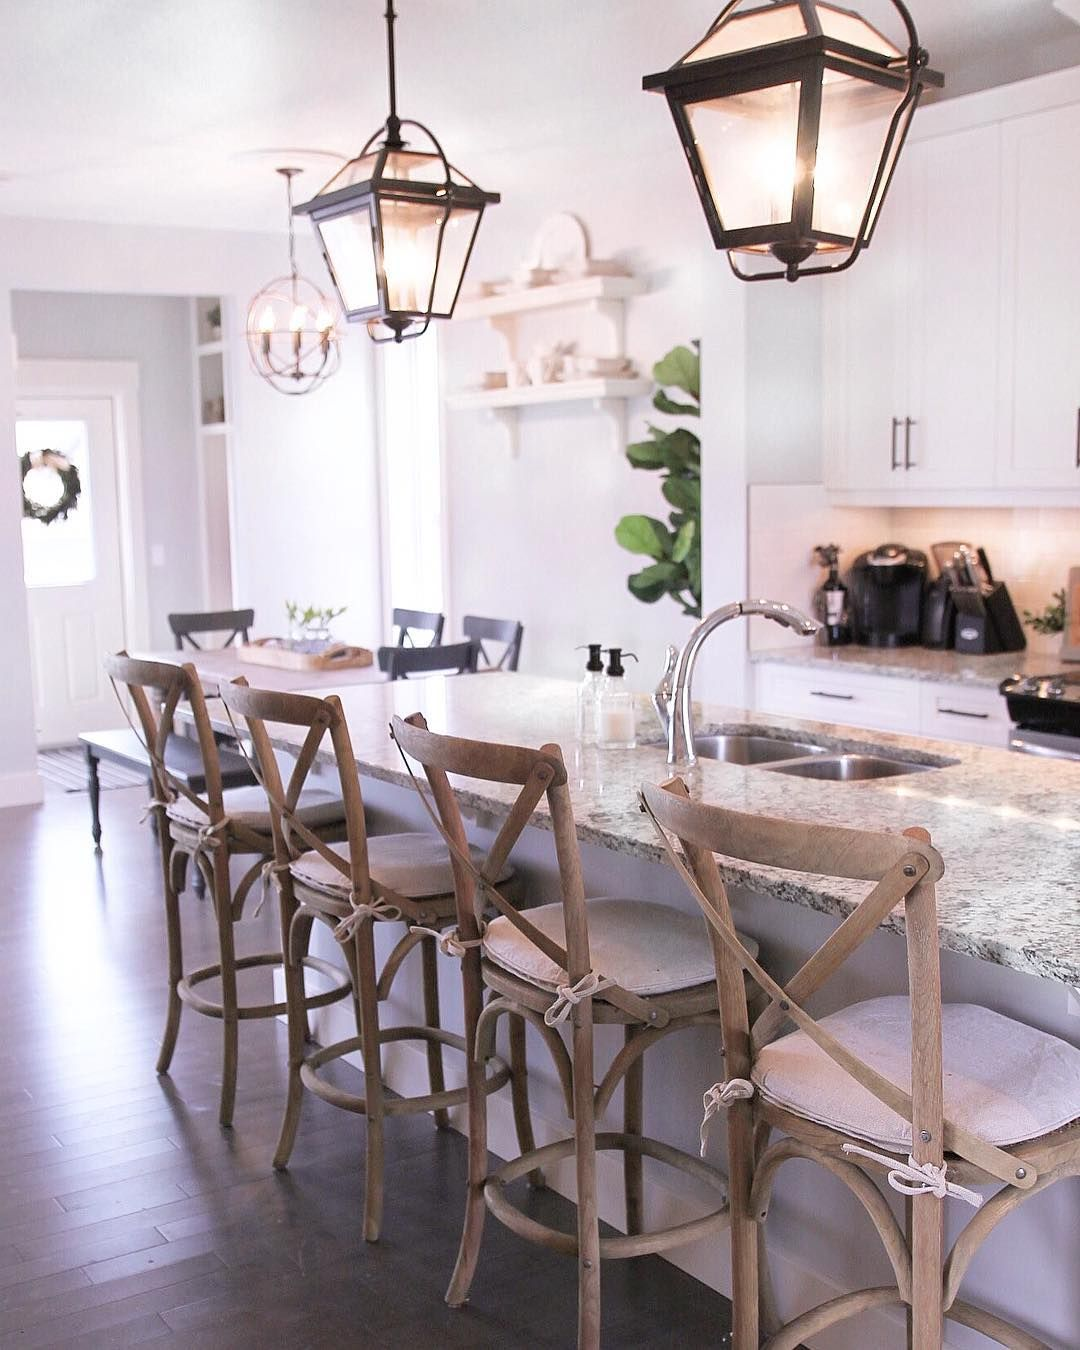 Restoration hardware bar stools different looks for the house